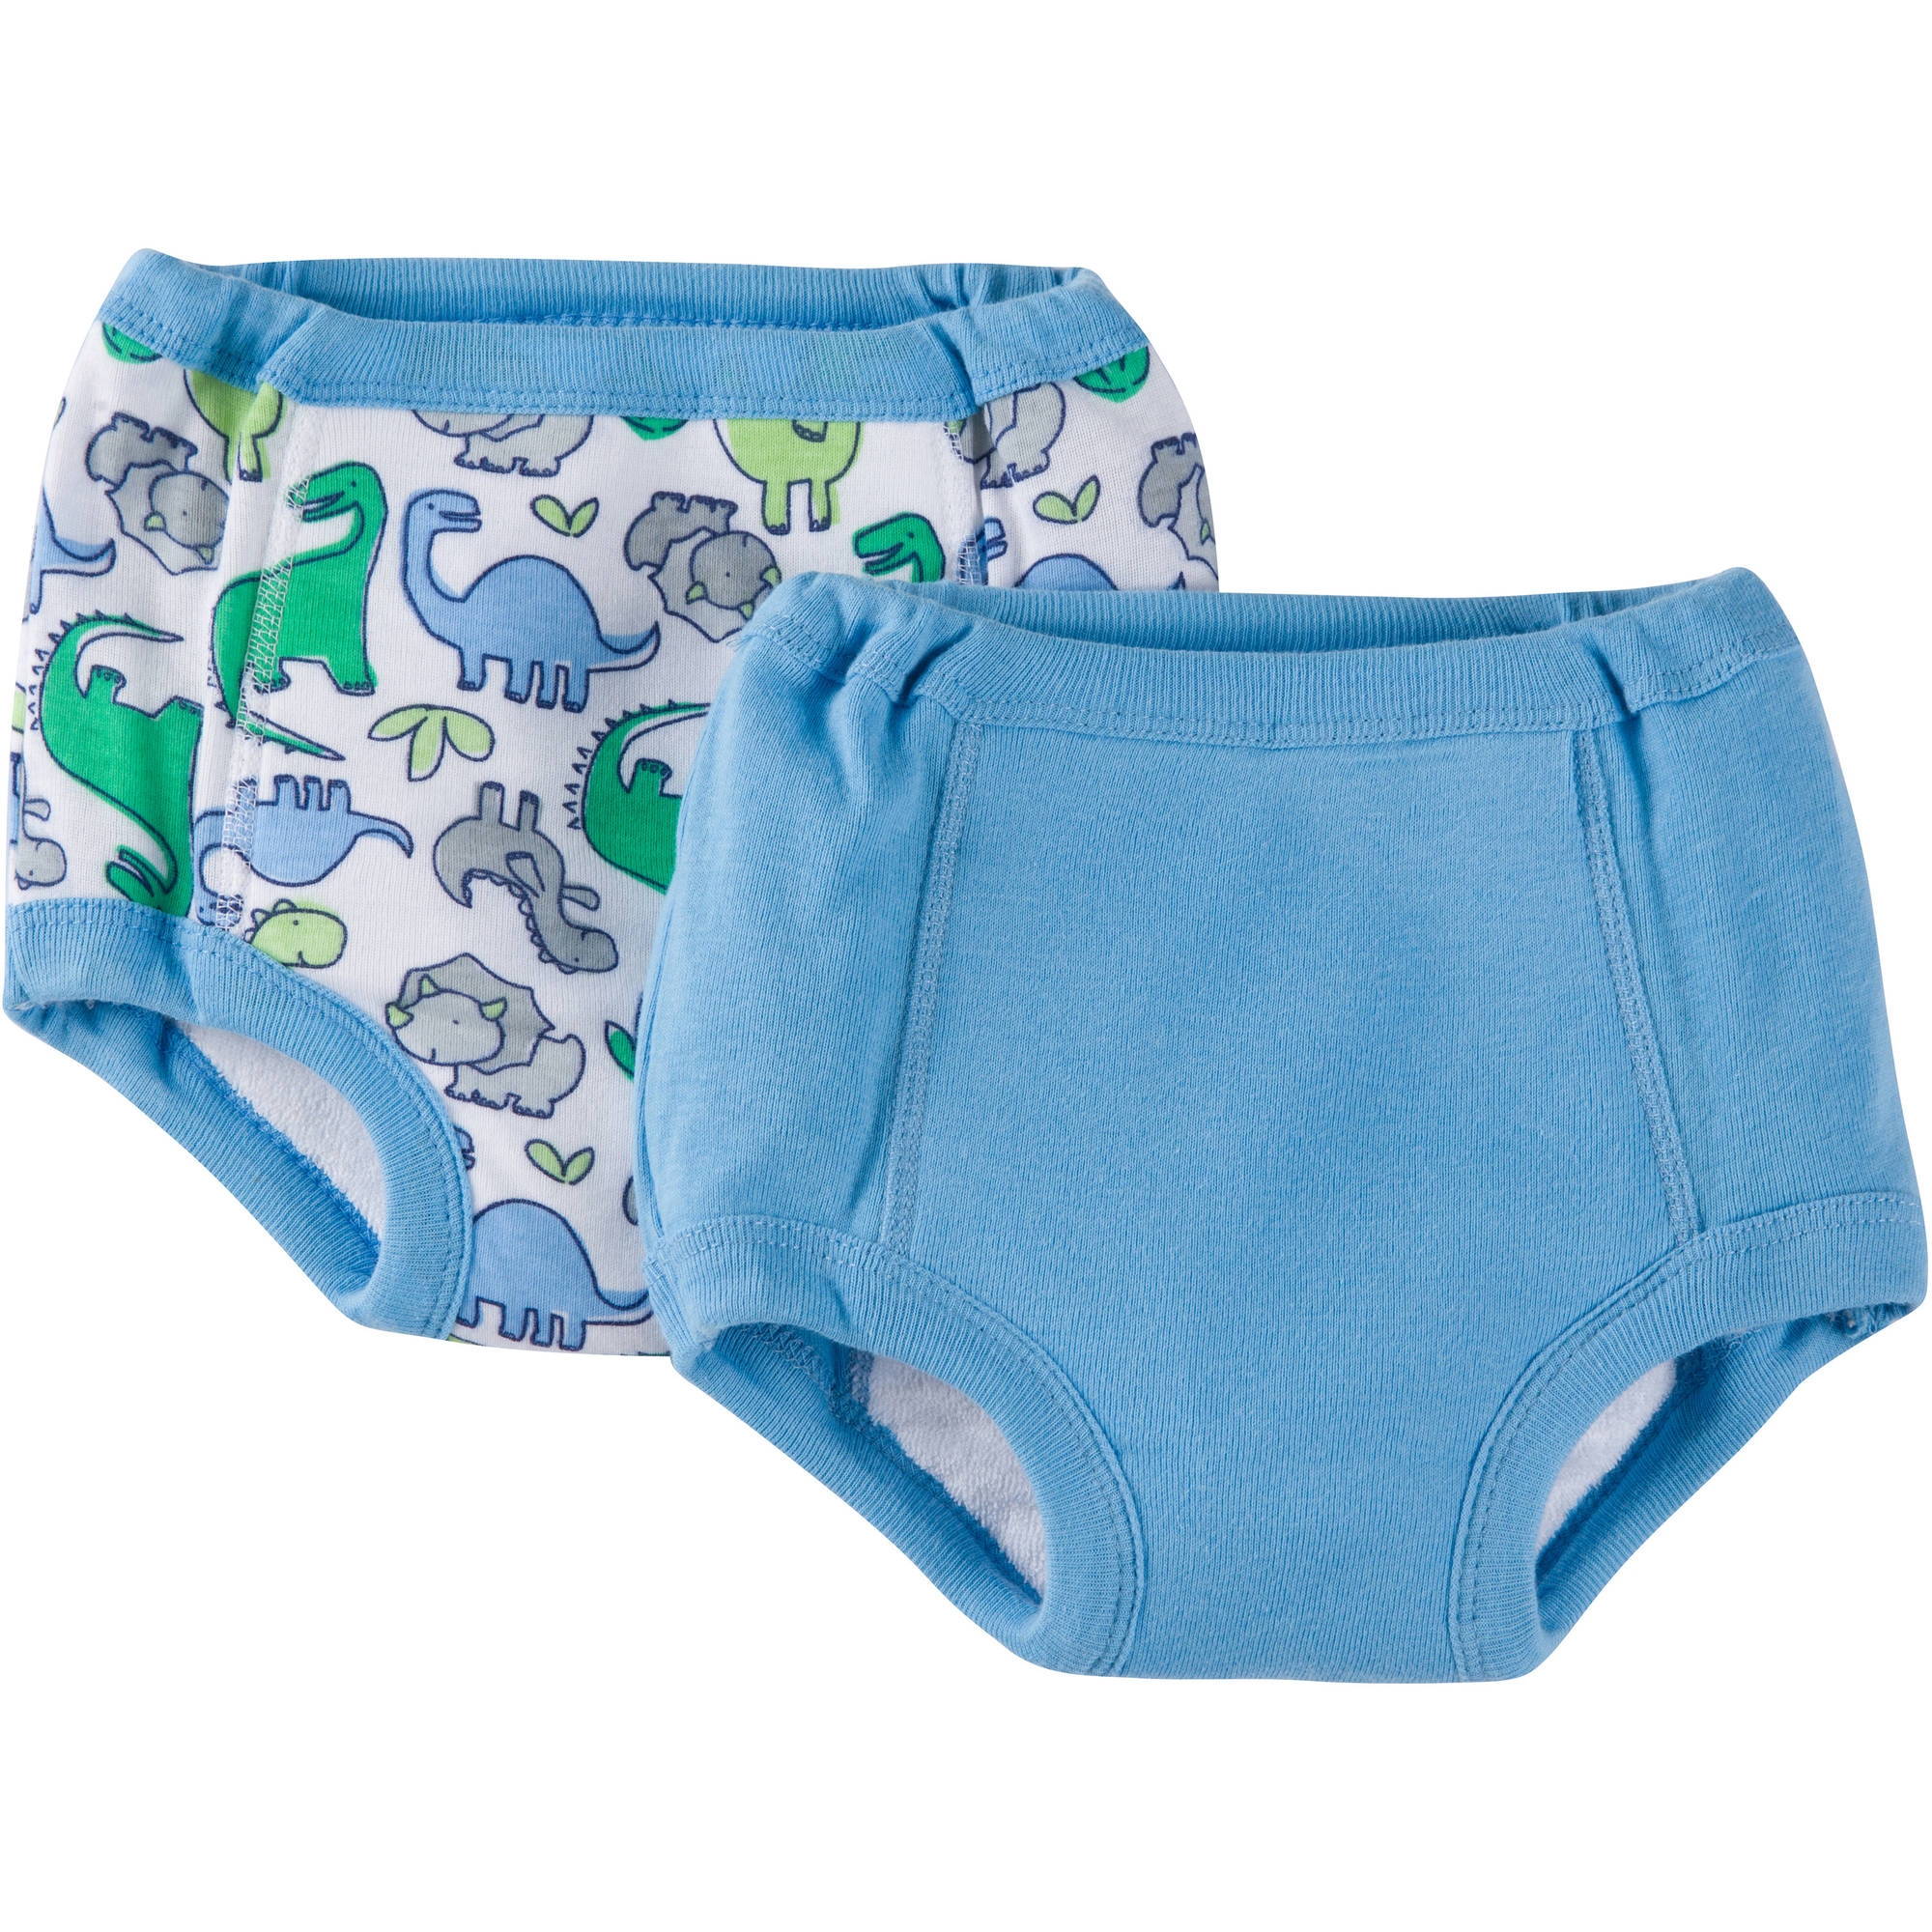 Gerber Baby Toddler Boys Dino 100% Cotton Training Pants with Peva Lining, 2-Pack Ages 2-3T